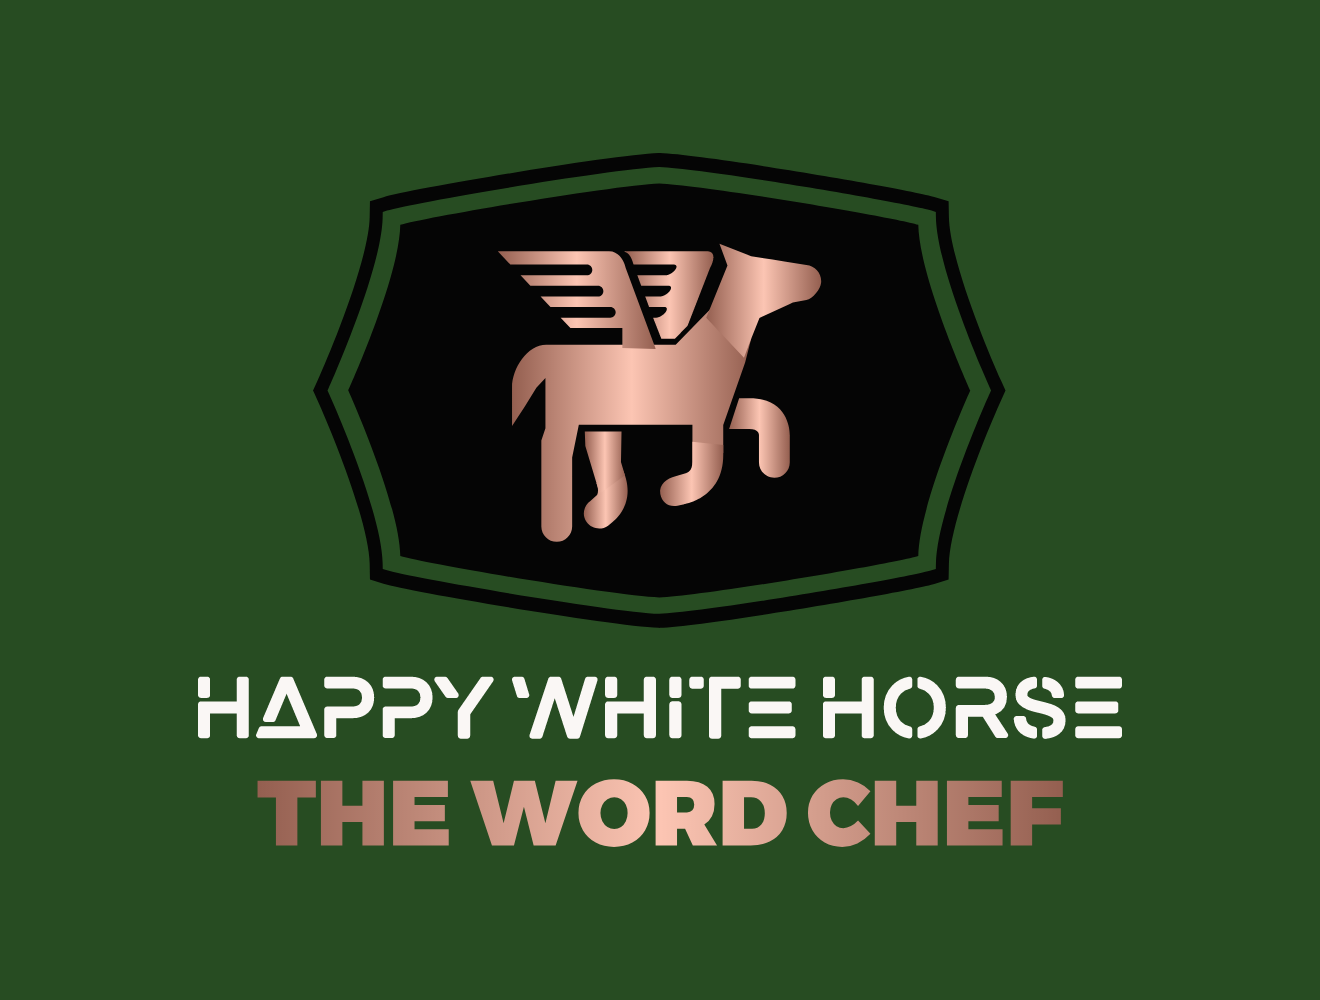 HAPPY WHITE HORSE